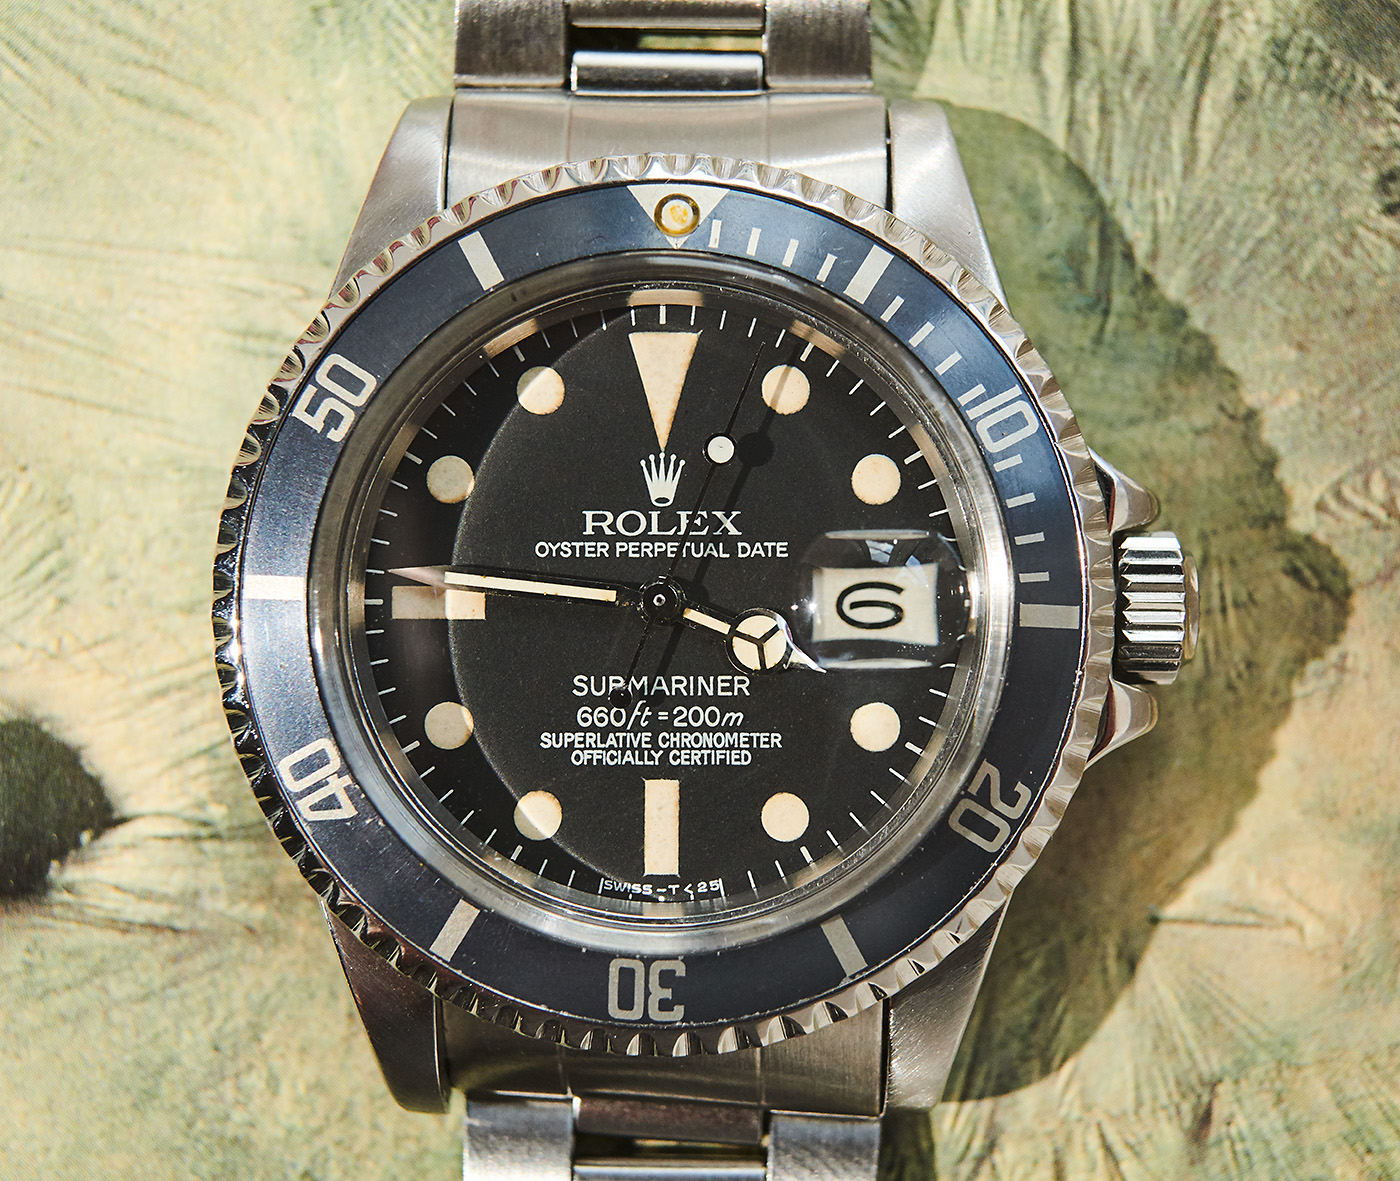 Rolex 1680 Sub, Box+Papers